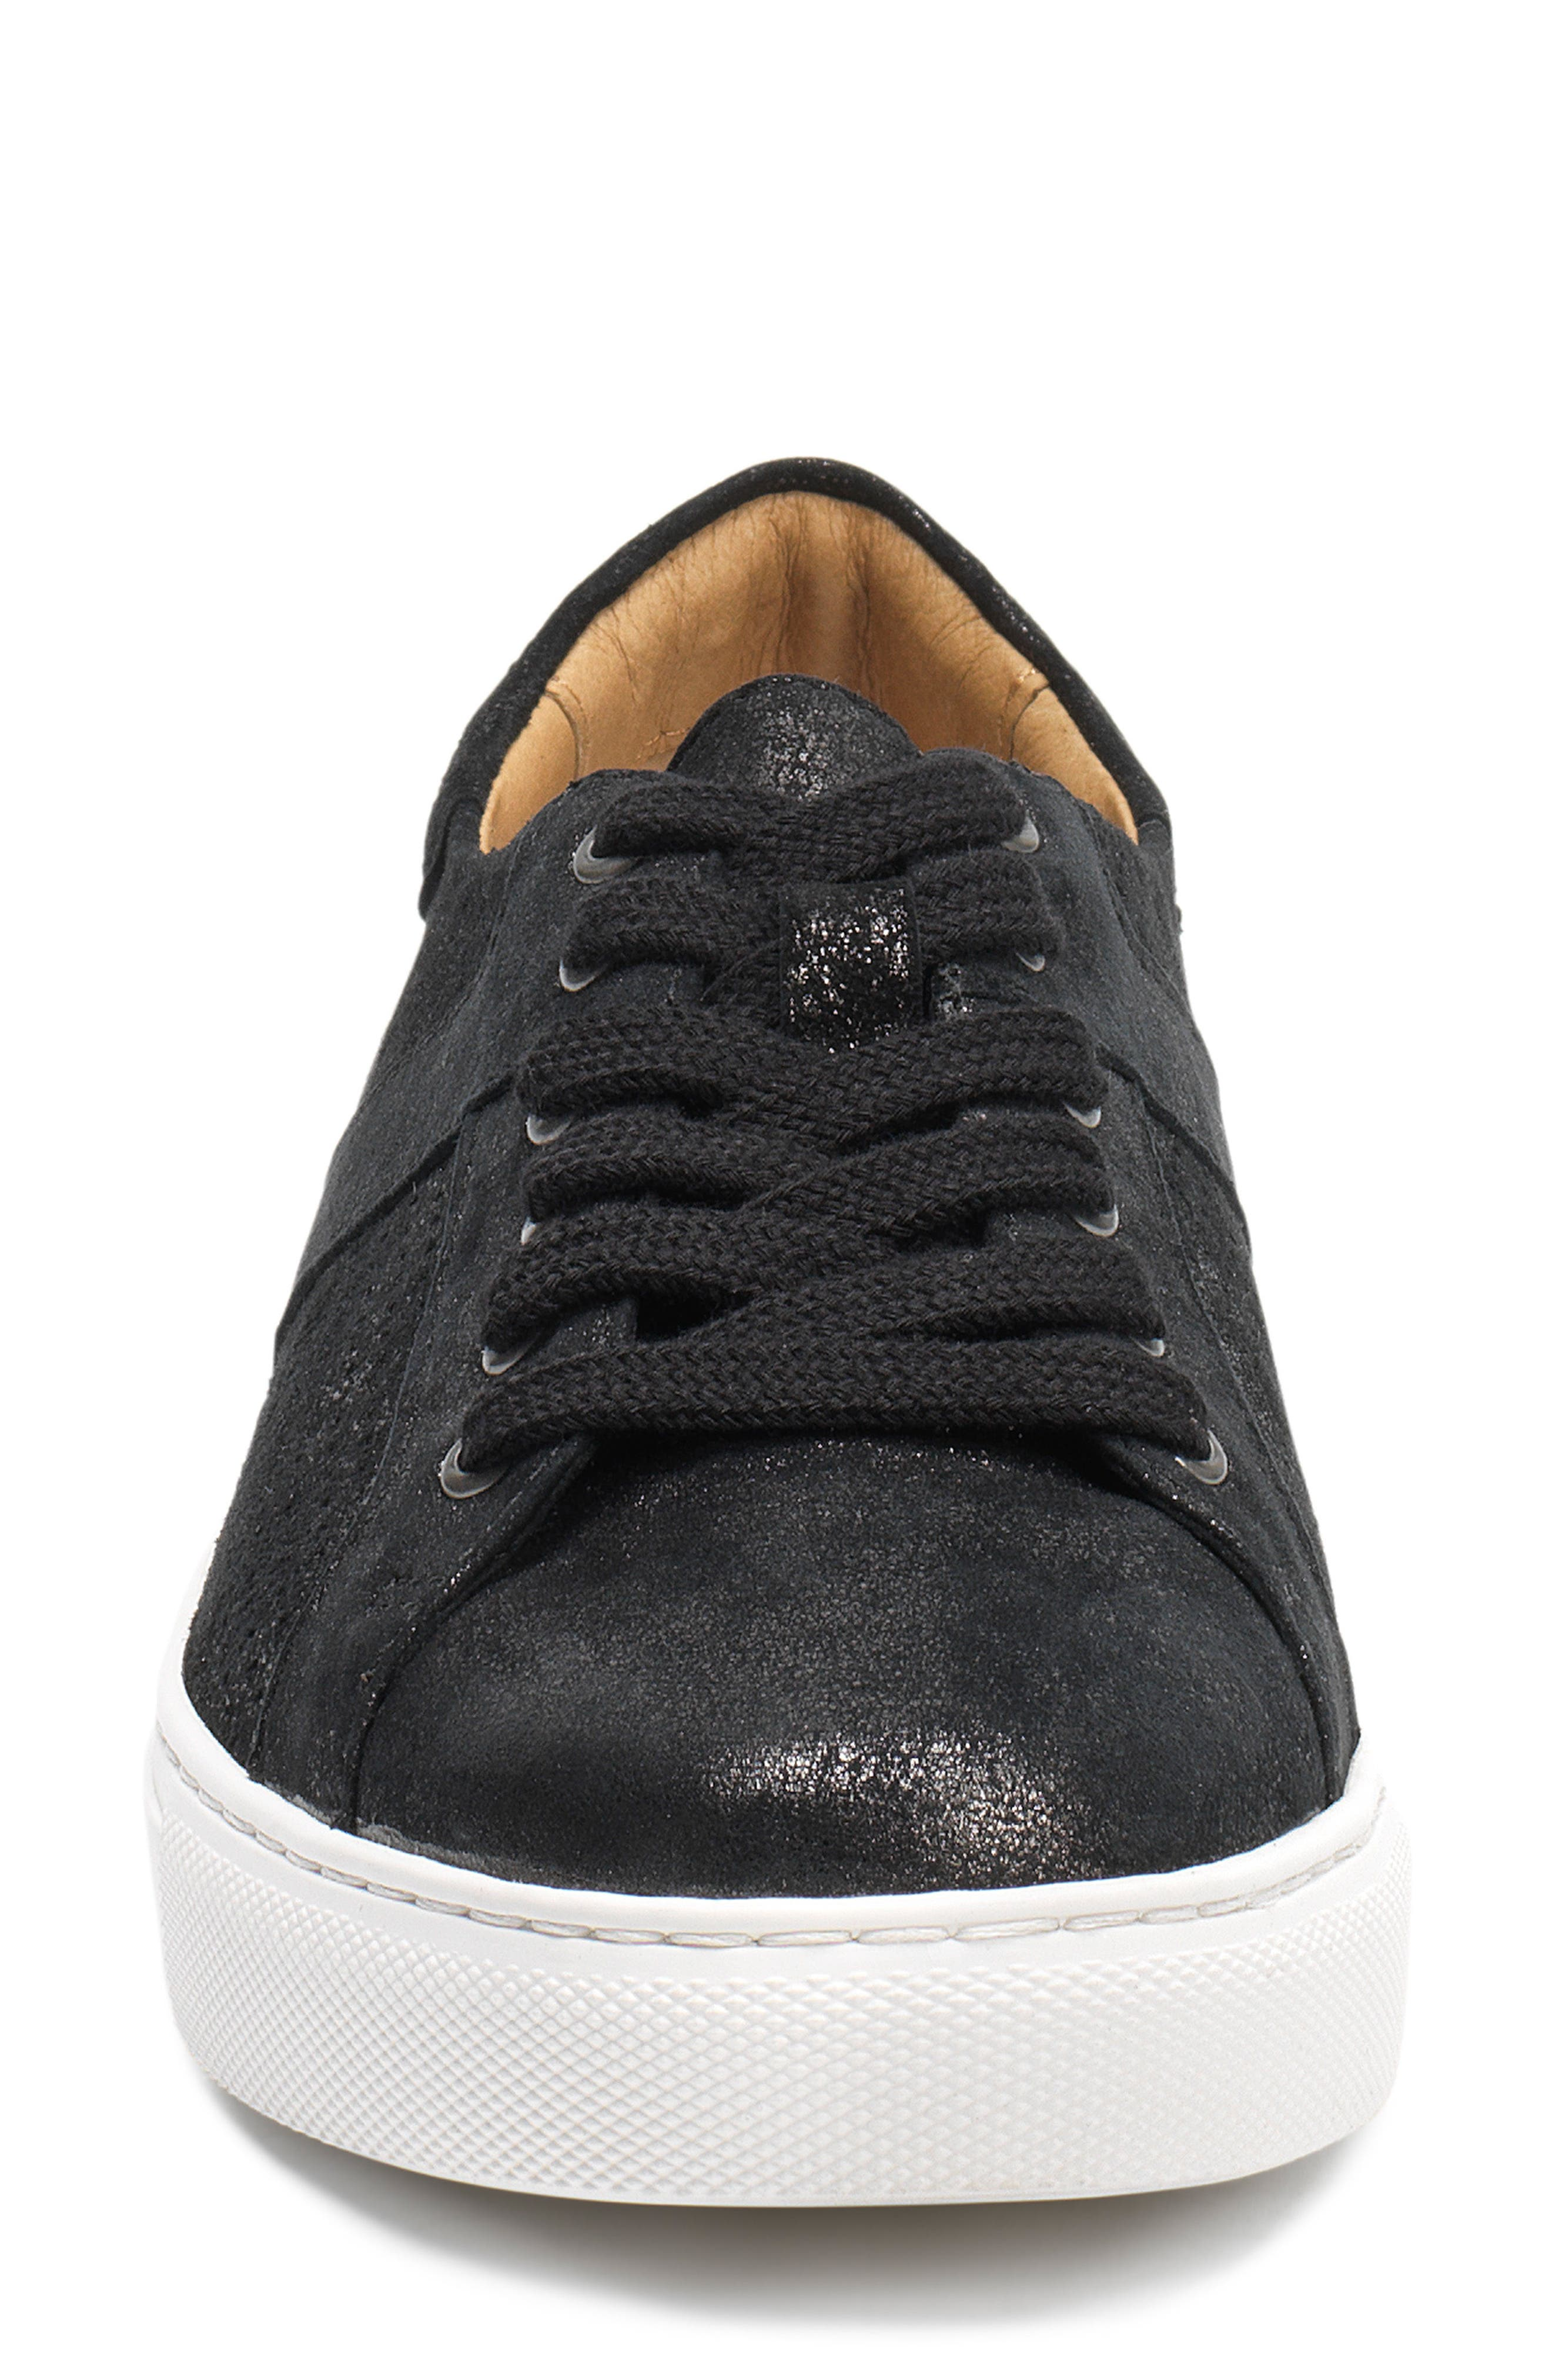 Lindsey Sneaker,                             Alternate thumbnail 4, color,                             BLACK METALLIC LEATHER